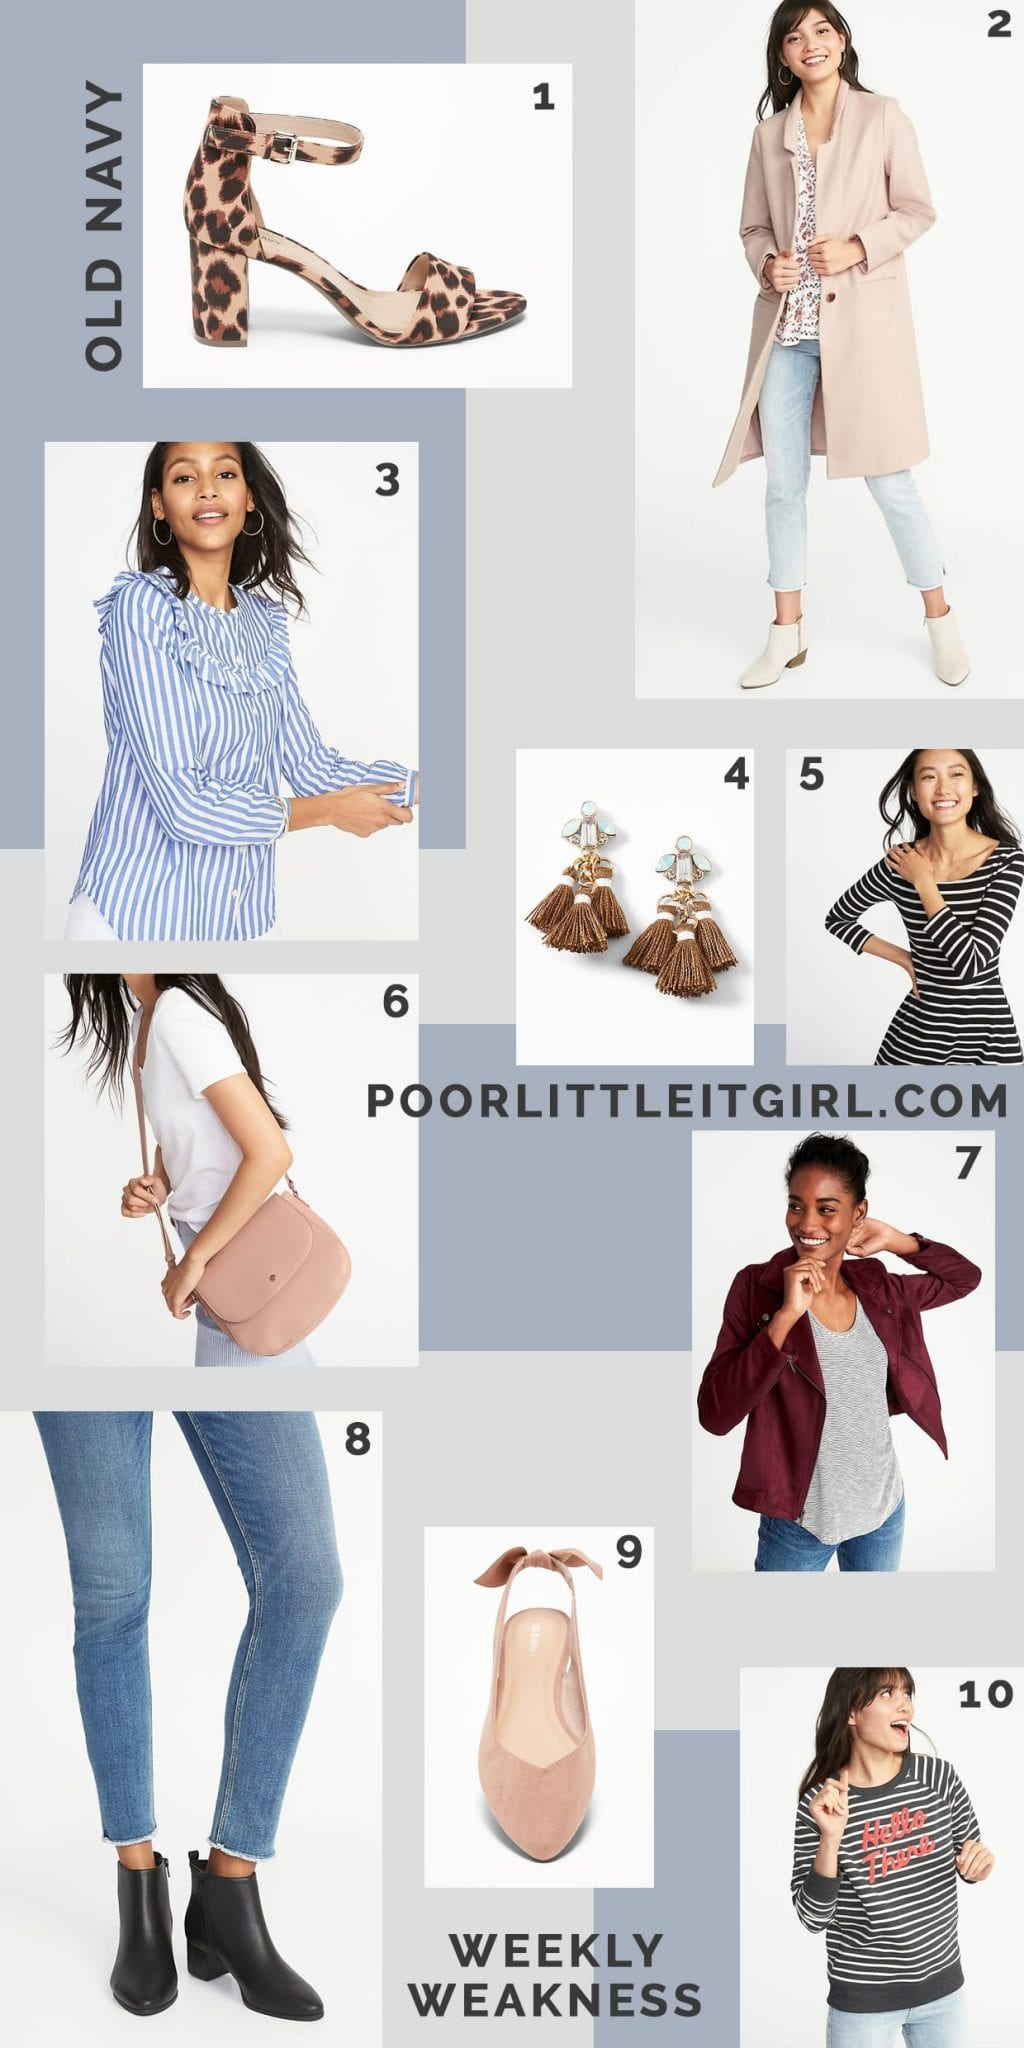 d4d4b5ce4fdb Old Navy Fall Fashion - Weekly Weakness - Poor Little It Girl